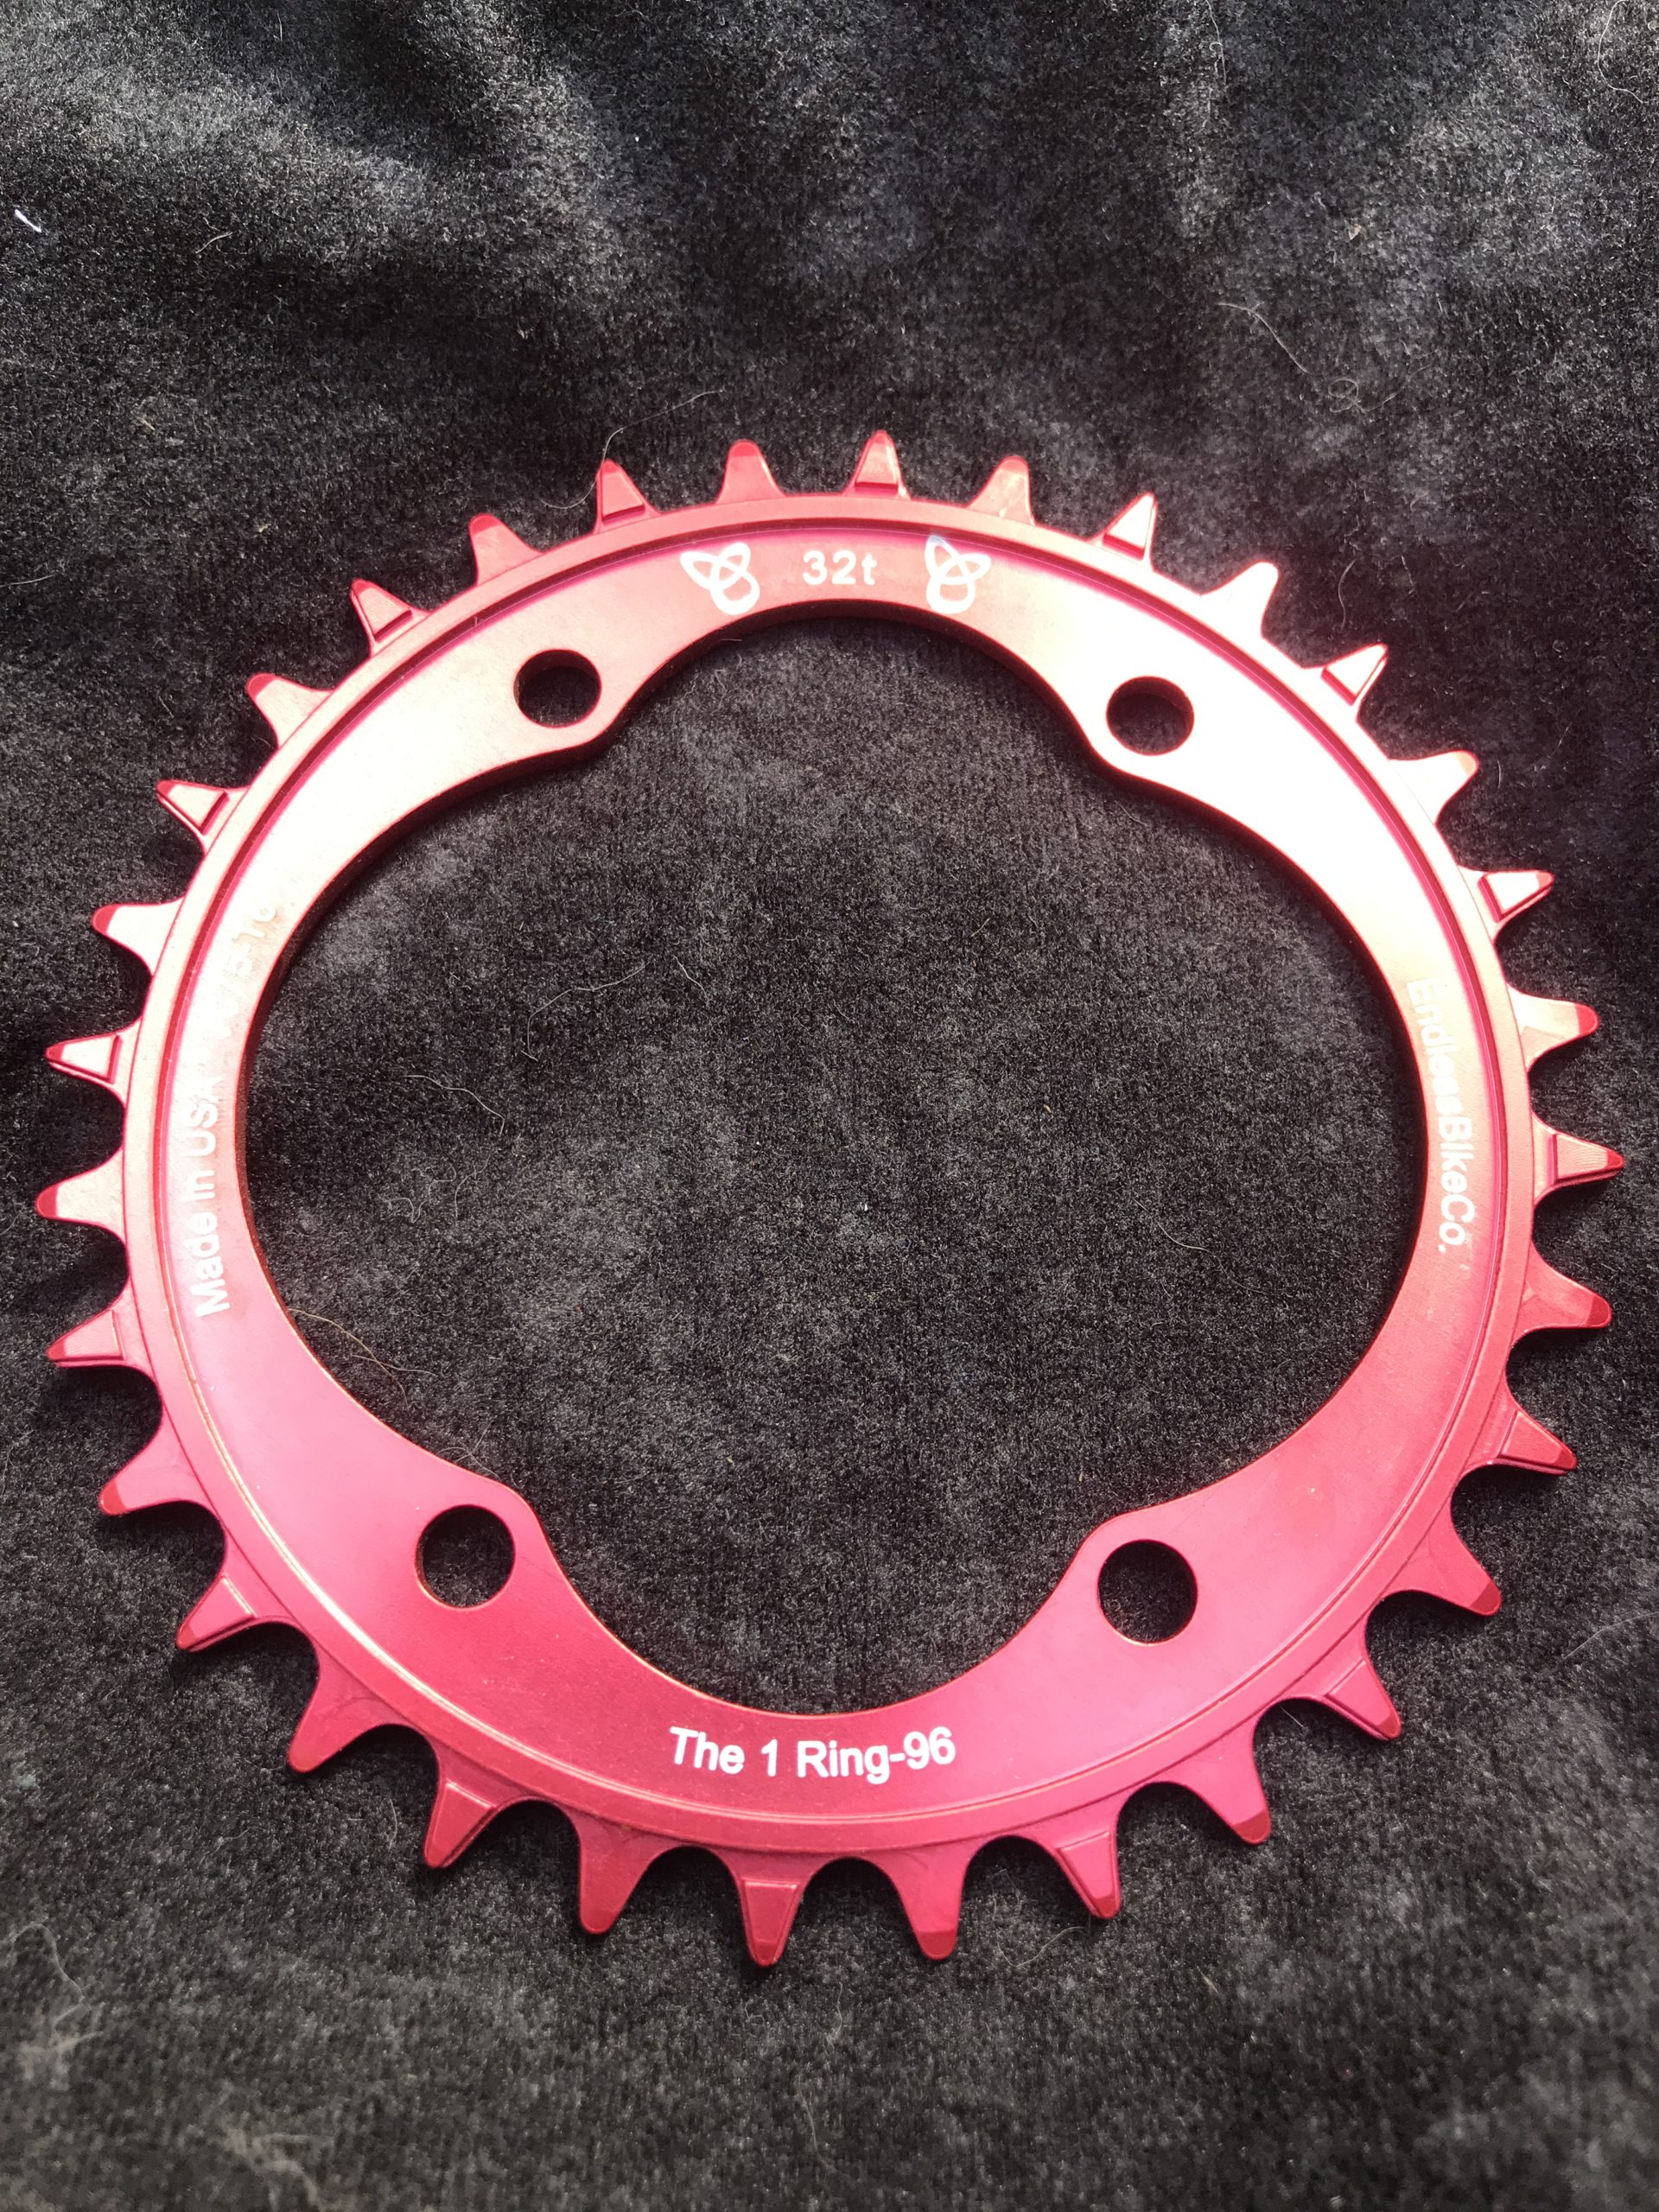 Shimano XT chainring 32t red